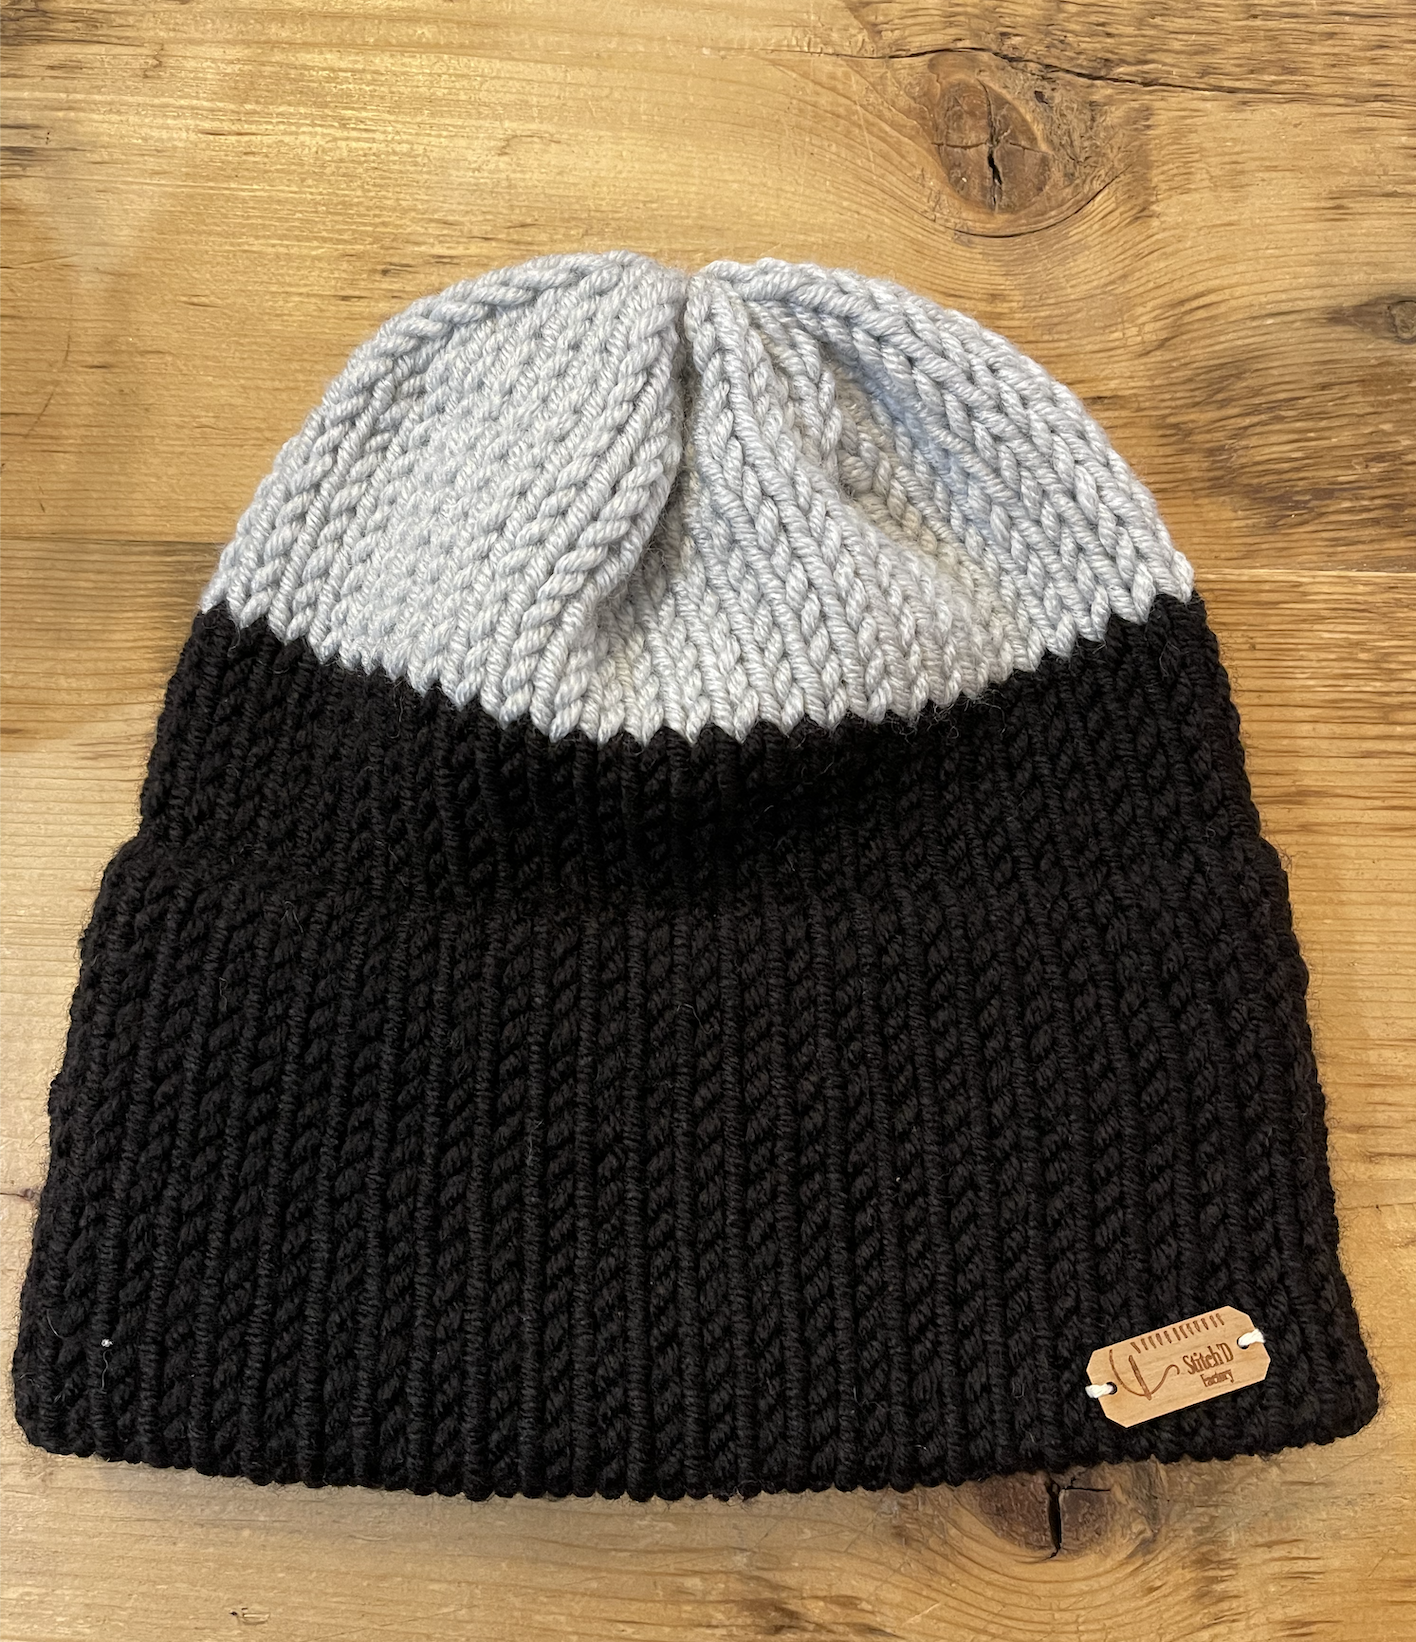 Stitch'D Factory Bac N Brooklyn Beanie-Grey/Black